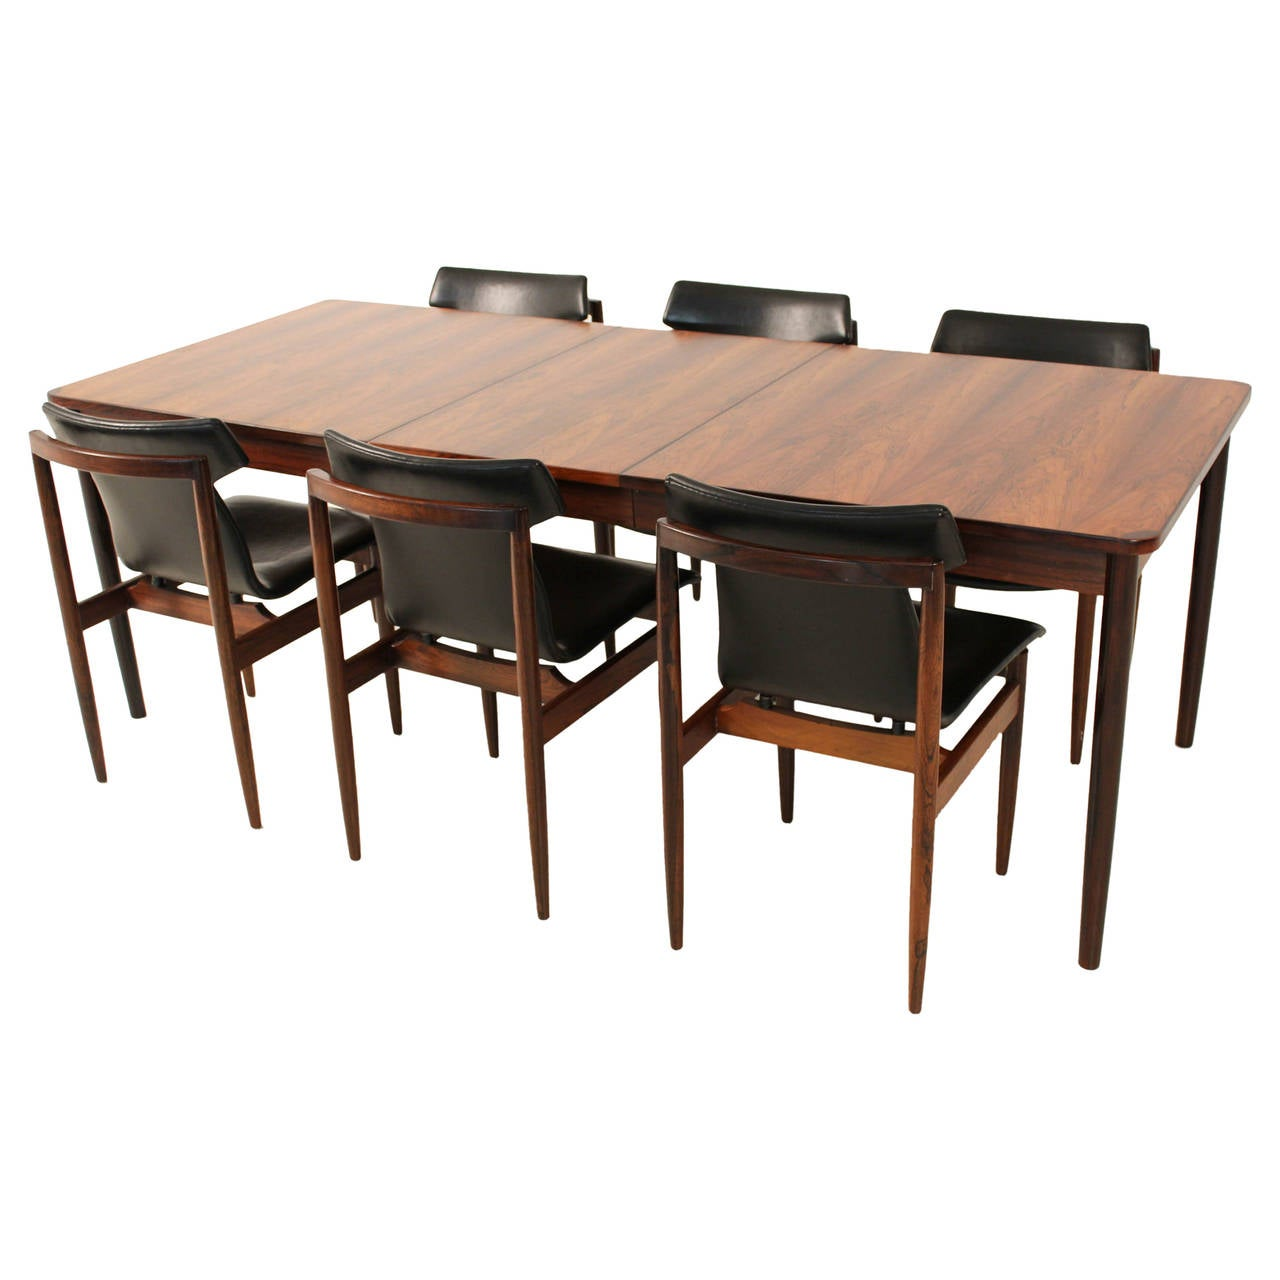 Mid century modern dining table by fristho at 1stdibs for Modern dining table